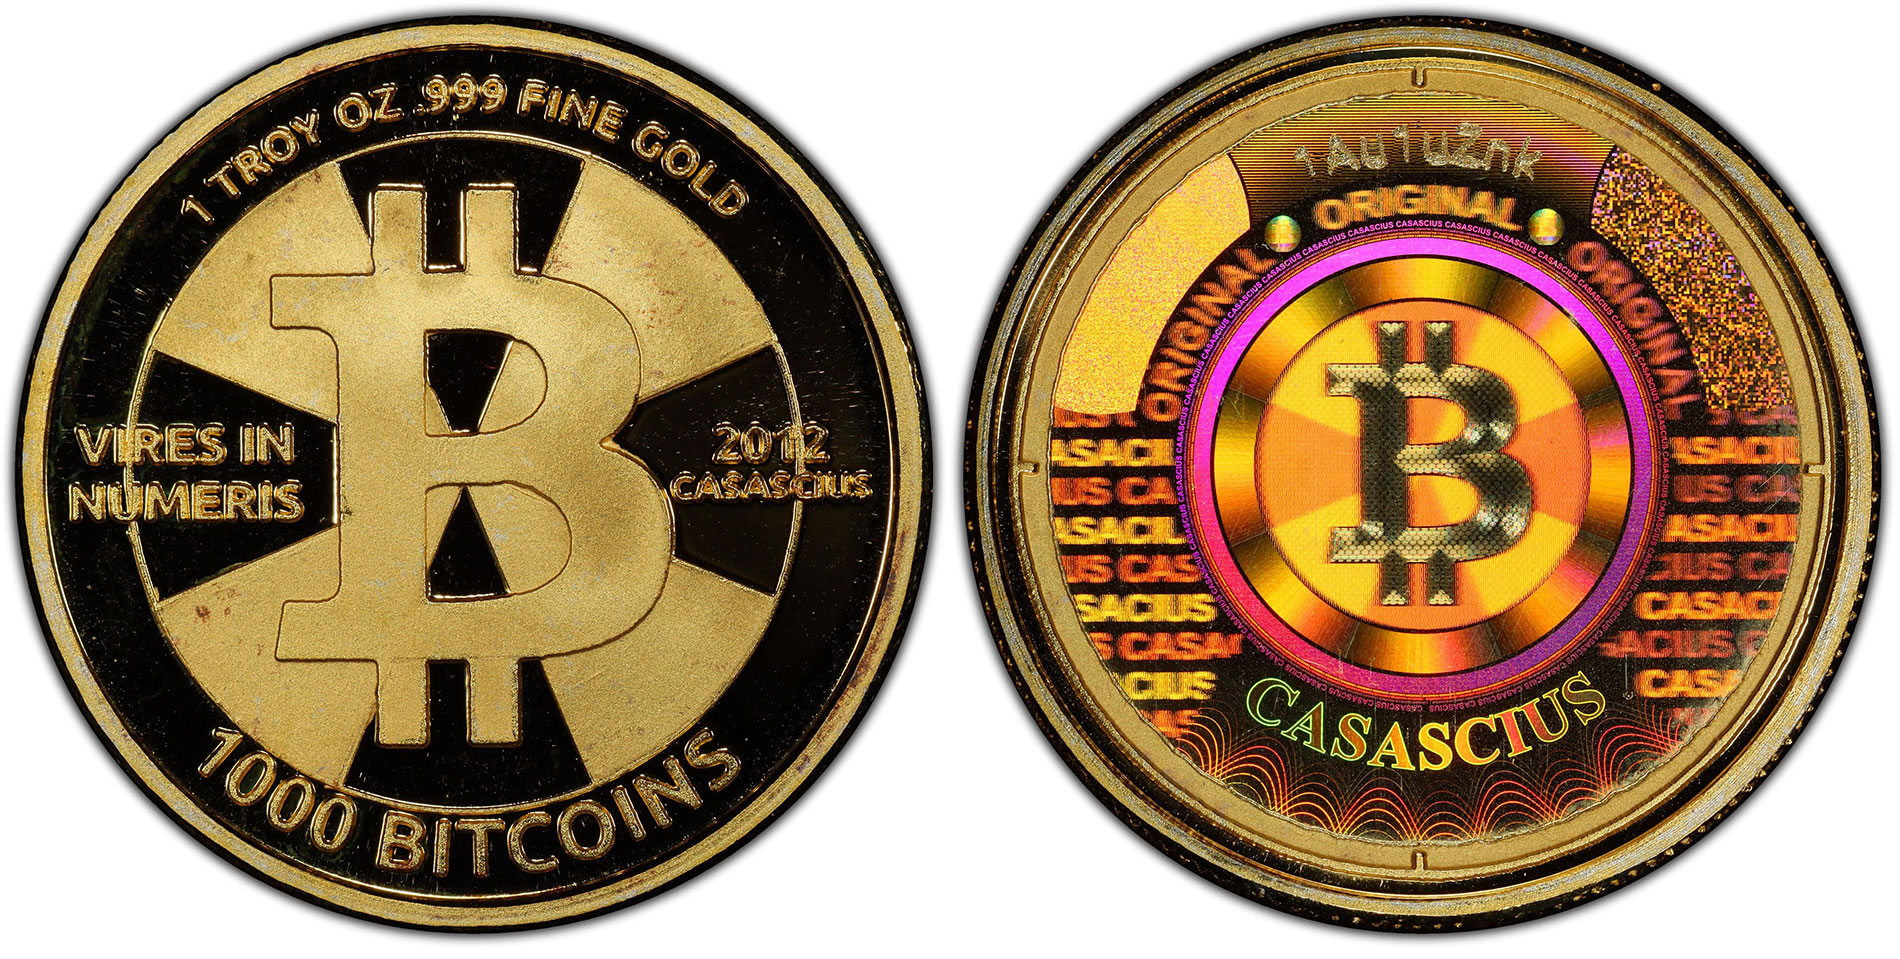 World's Most Valuable Numismatic Item, $48 Million Gold 1,000 Bitcoin Physical Coin, Submitted by GreatCollections to PCGS